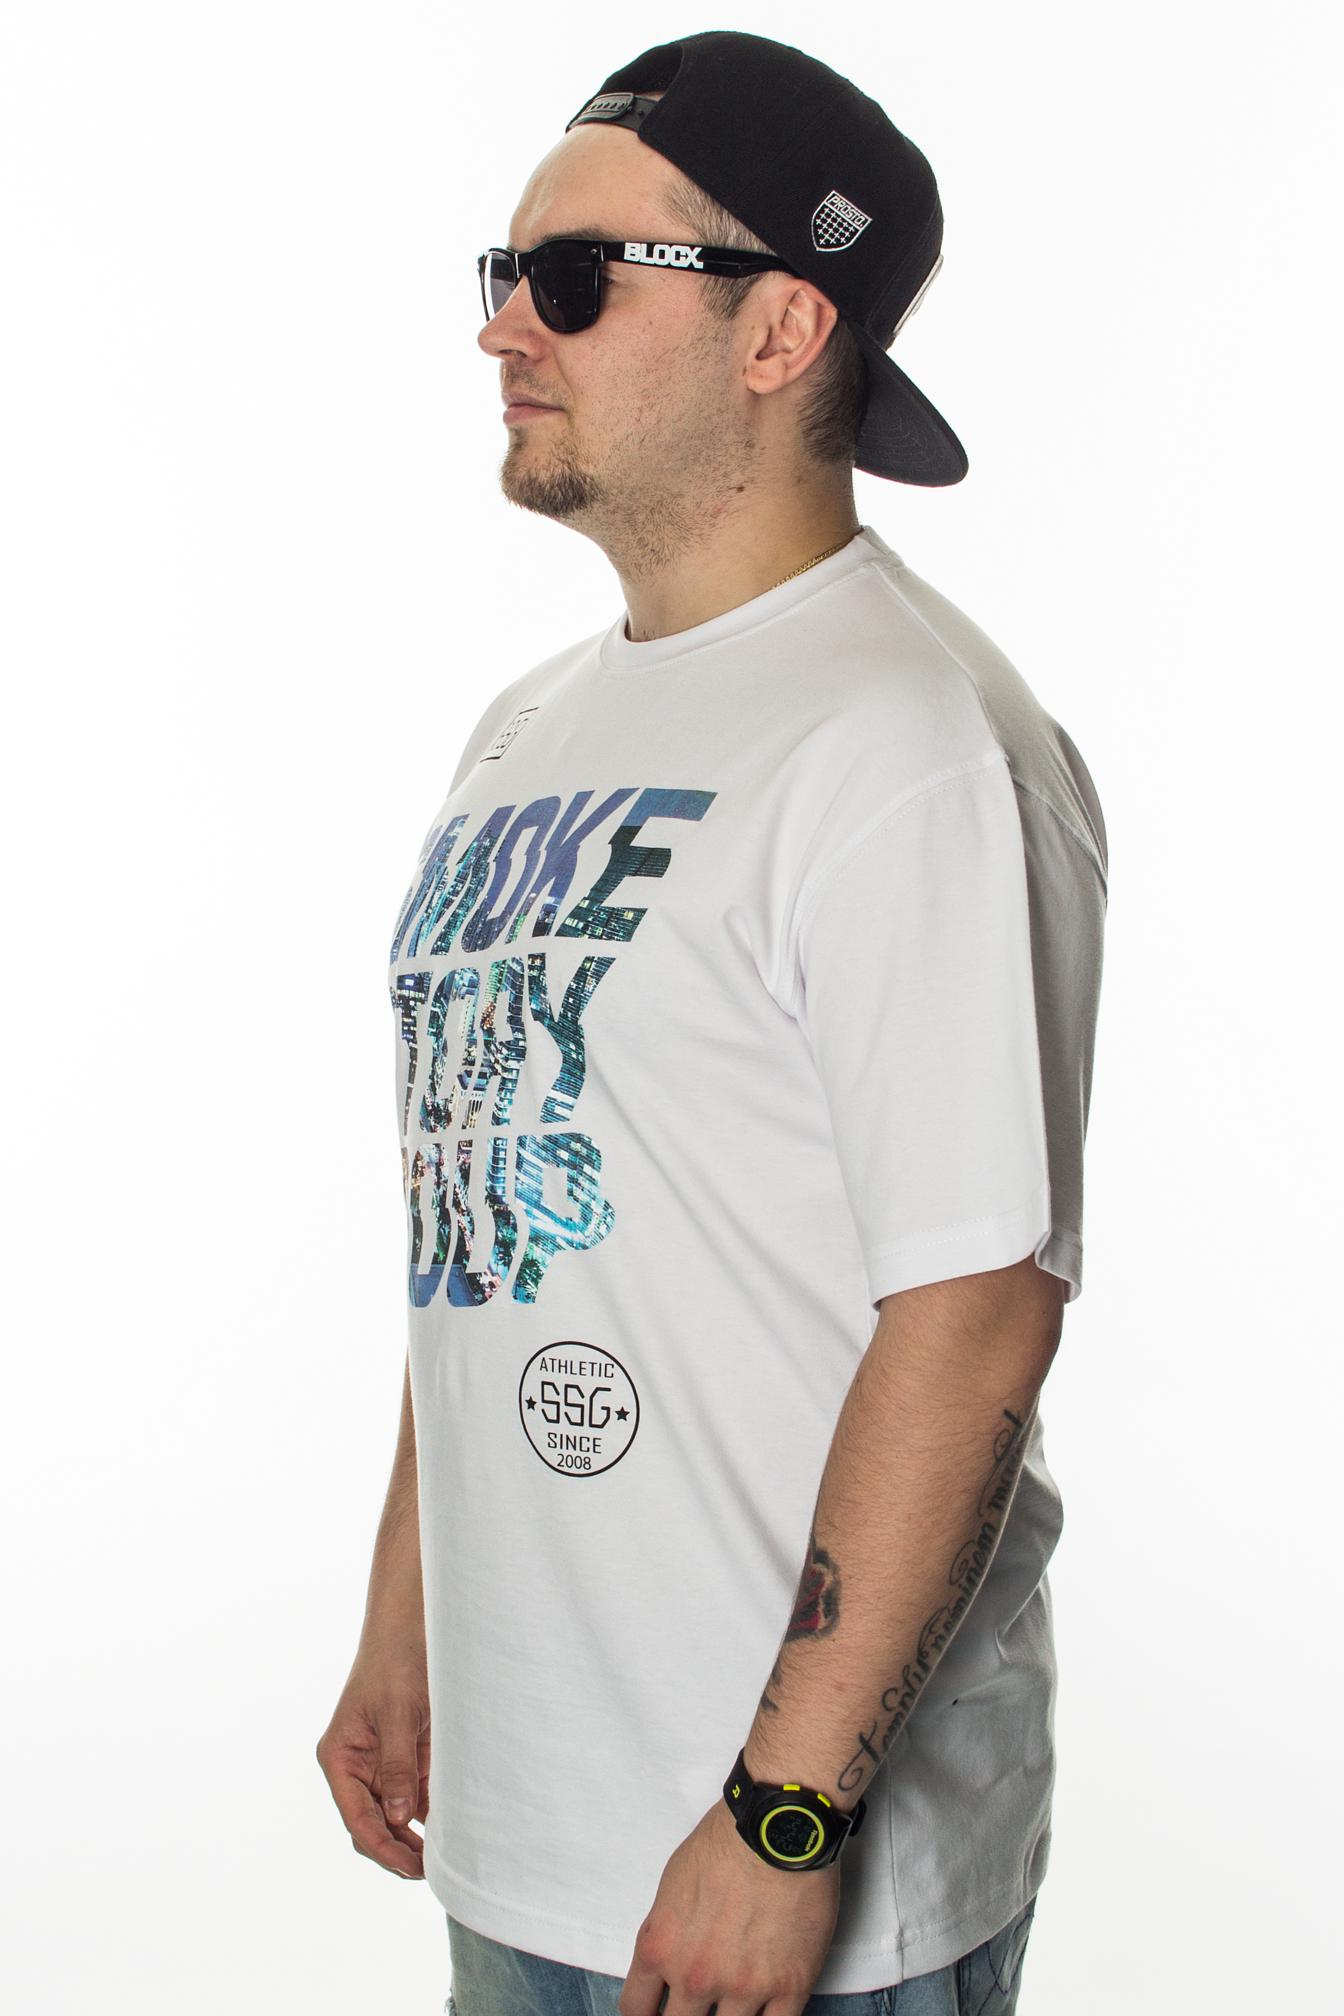 SMOKE STORY GROUP T-SHIRT SMG SLANT WHITE